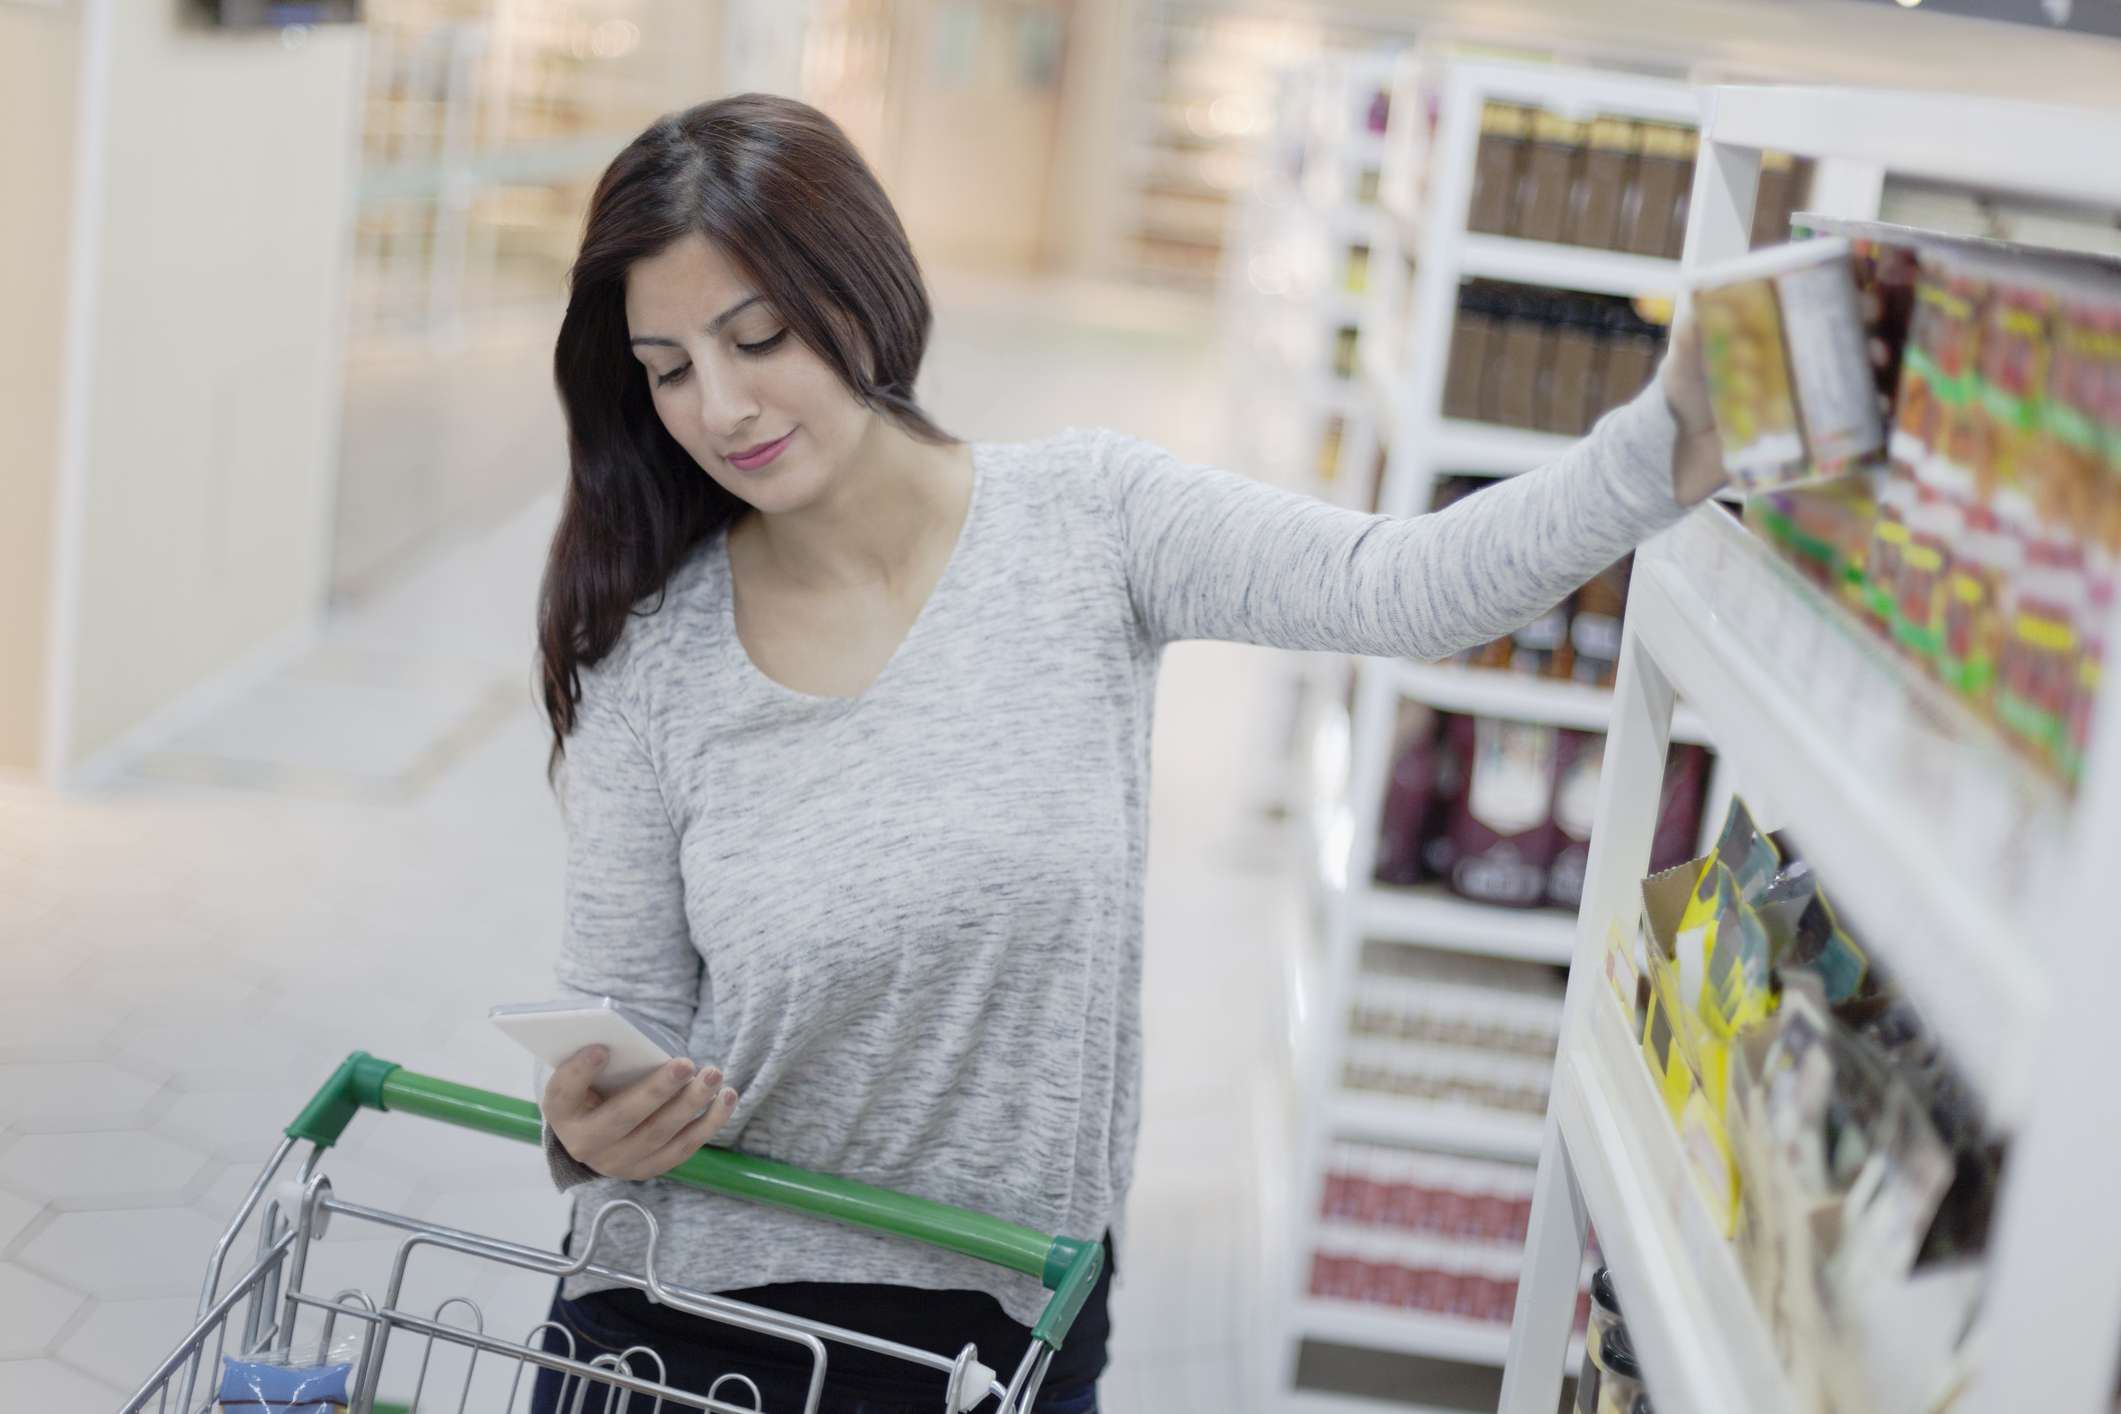 Woman shopping with coupon app